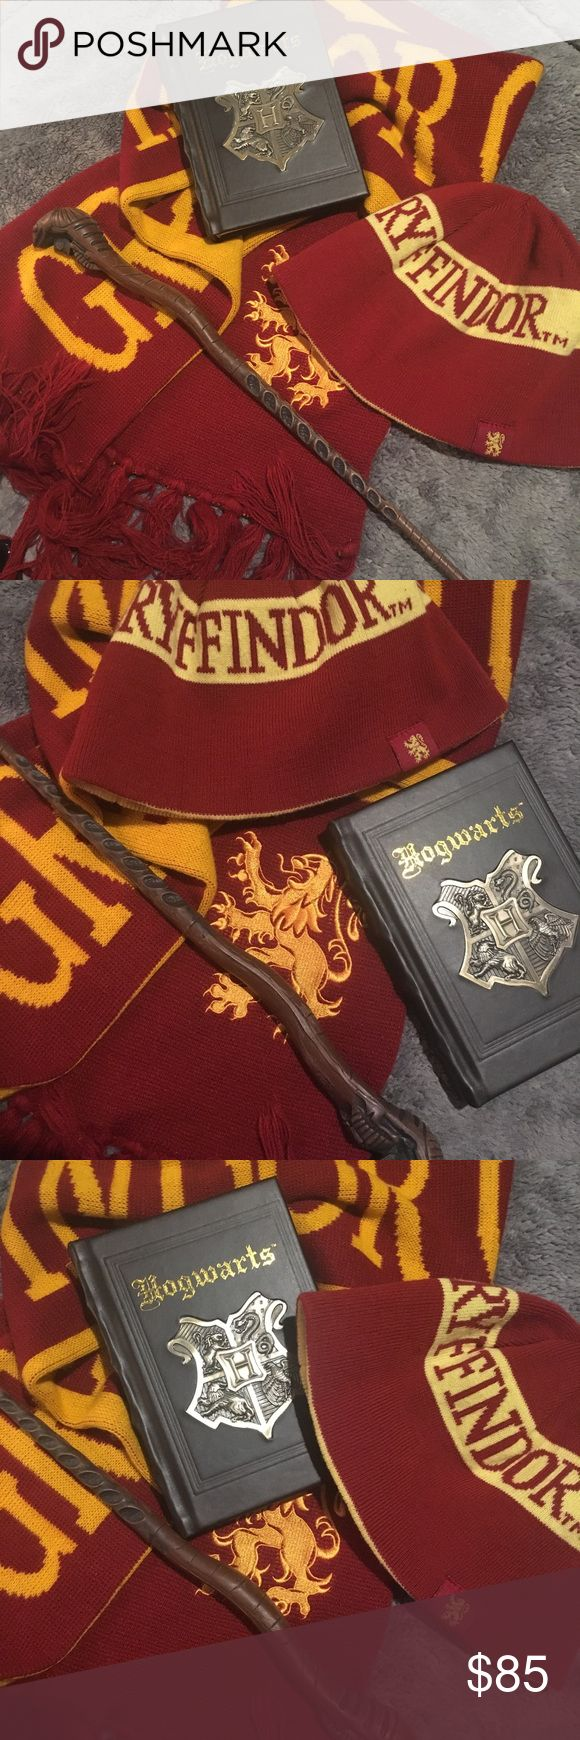 Harry Potter Scarf, hat, wand and notebook. Sale! 💥 Harry Potter Wand, Scarf, Hat and Notebook. All bought in Universal studio's Orlando. harry potter Accessories